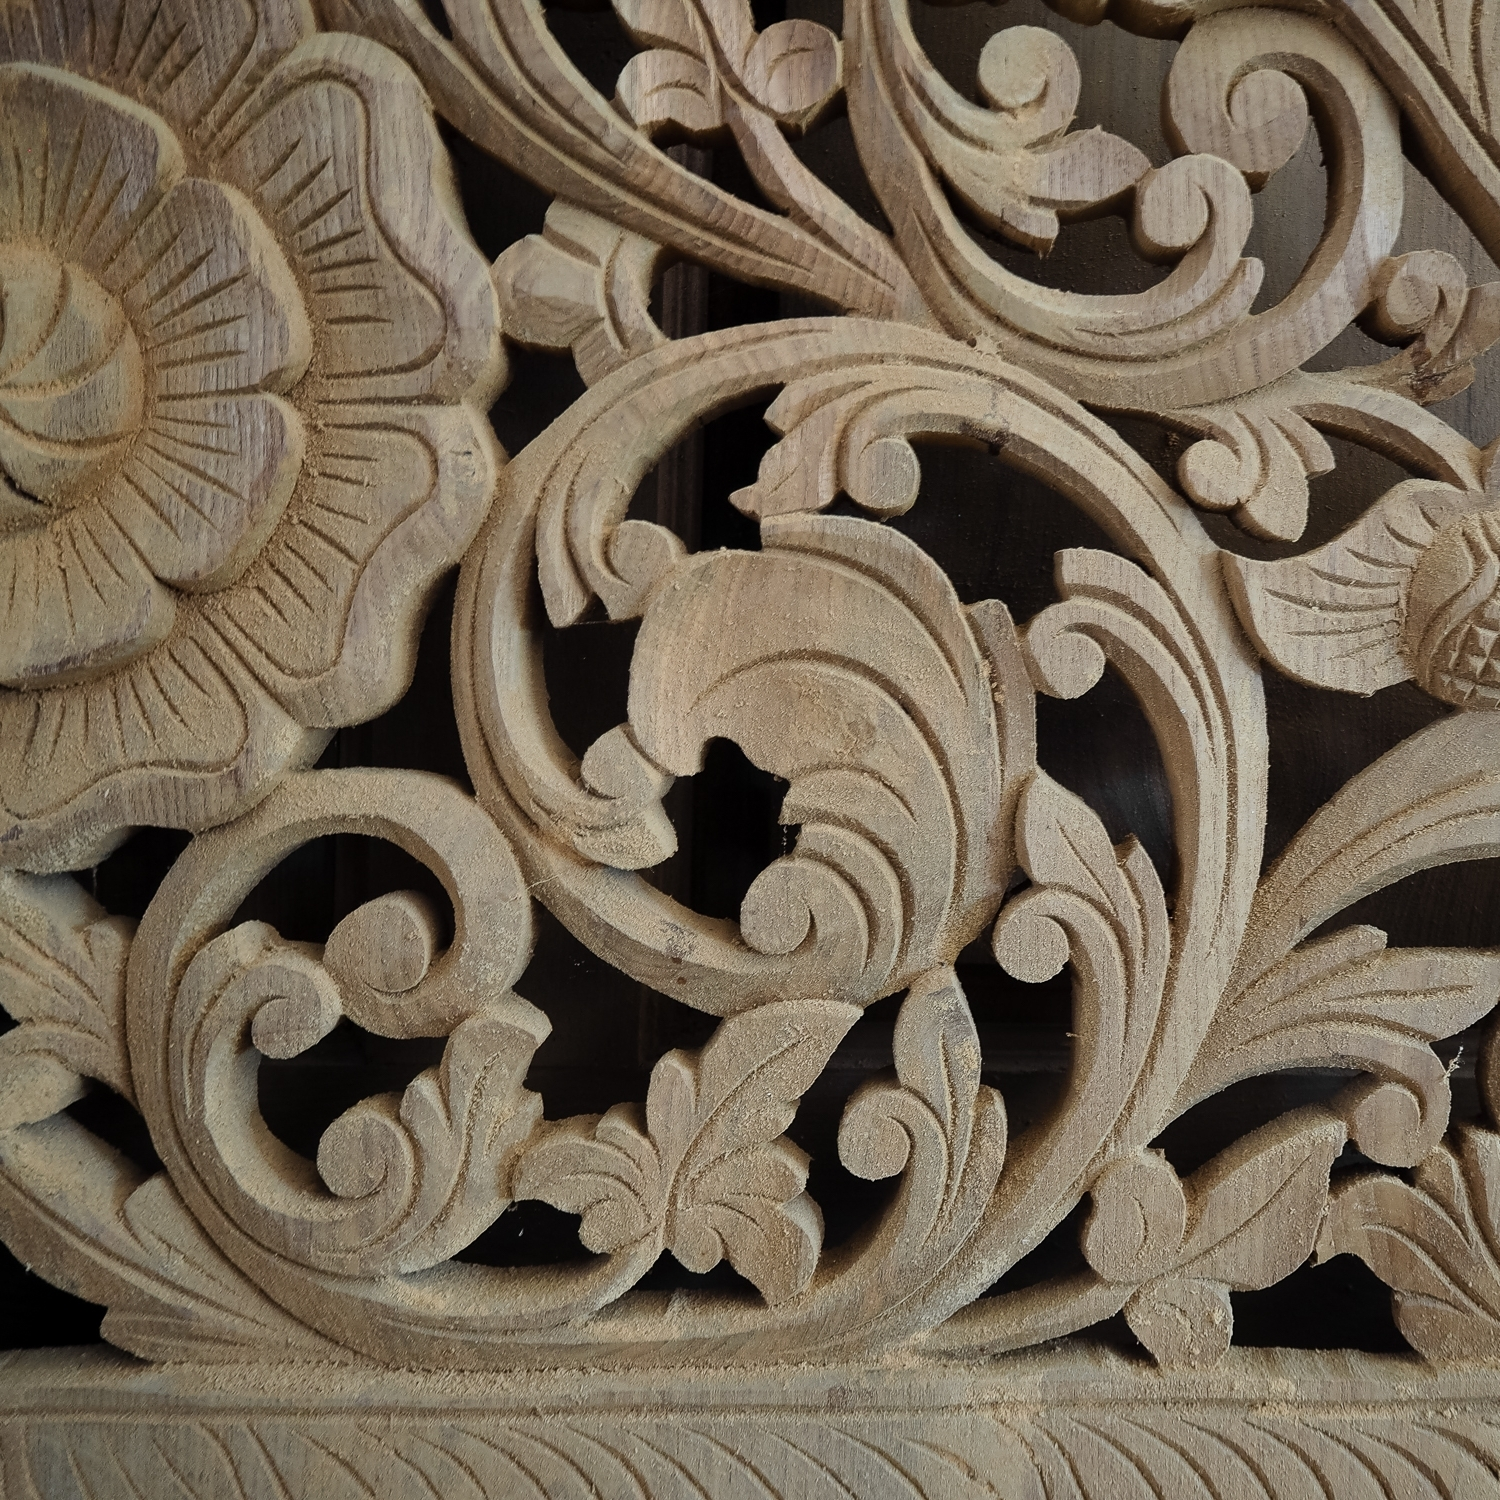 Oriental Wall Art Intended For Popular Buy Carved Bed Panel Oriental Wall Art Decor, Carved Wood Headboard (View 12 of 20)